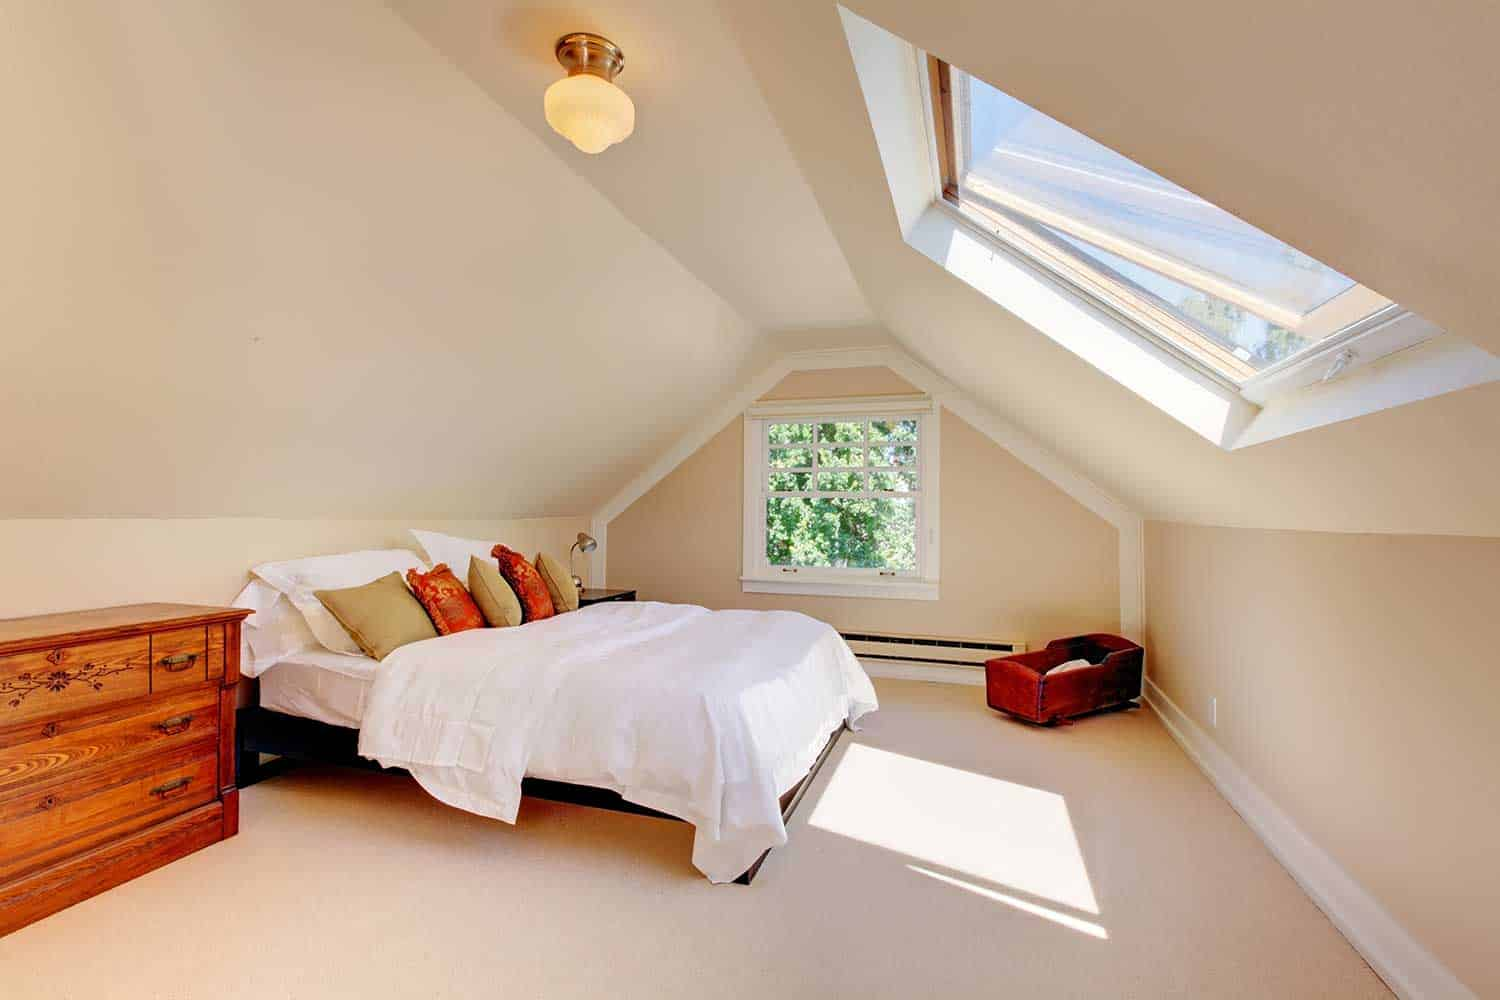 Attic modern bedroom with white bed and skylight